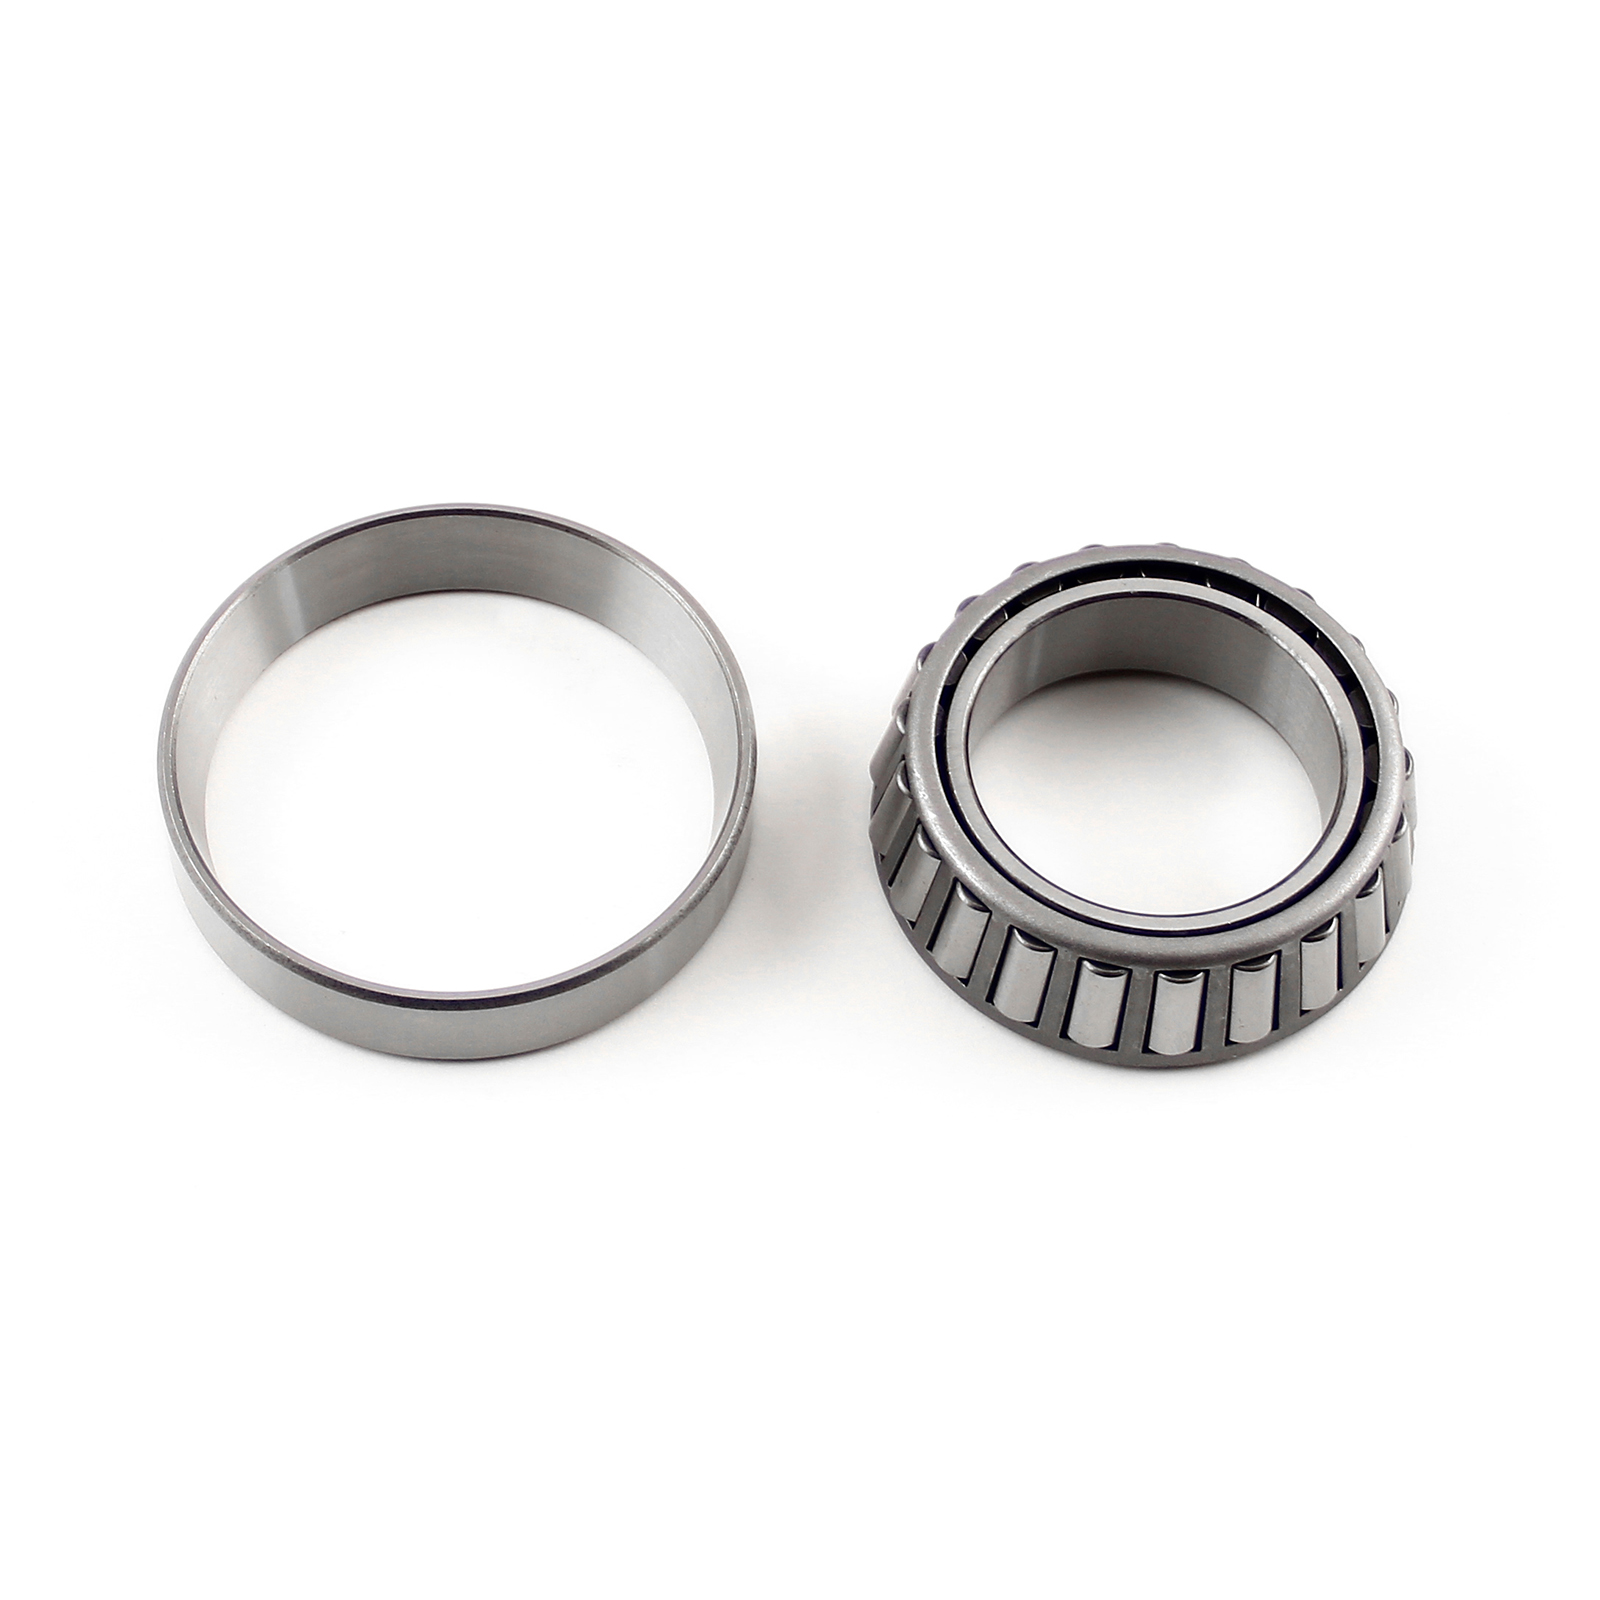 Carrier Bearing Industry Std Ref: Lm104949/ 911